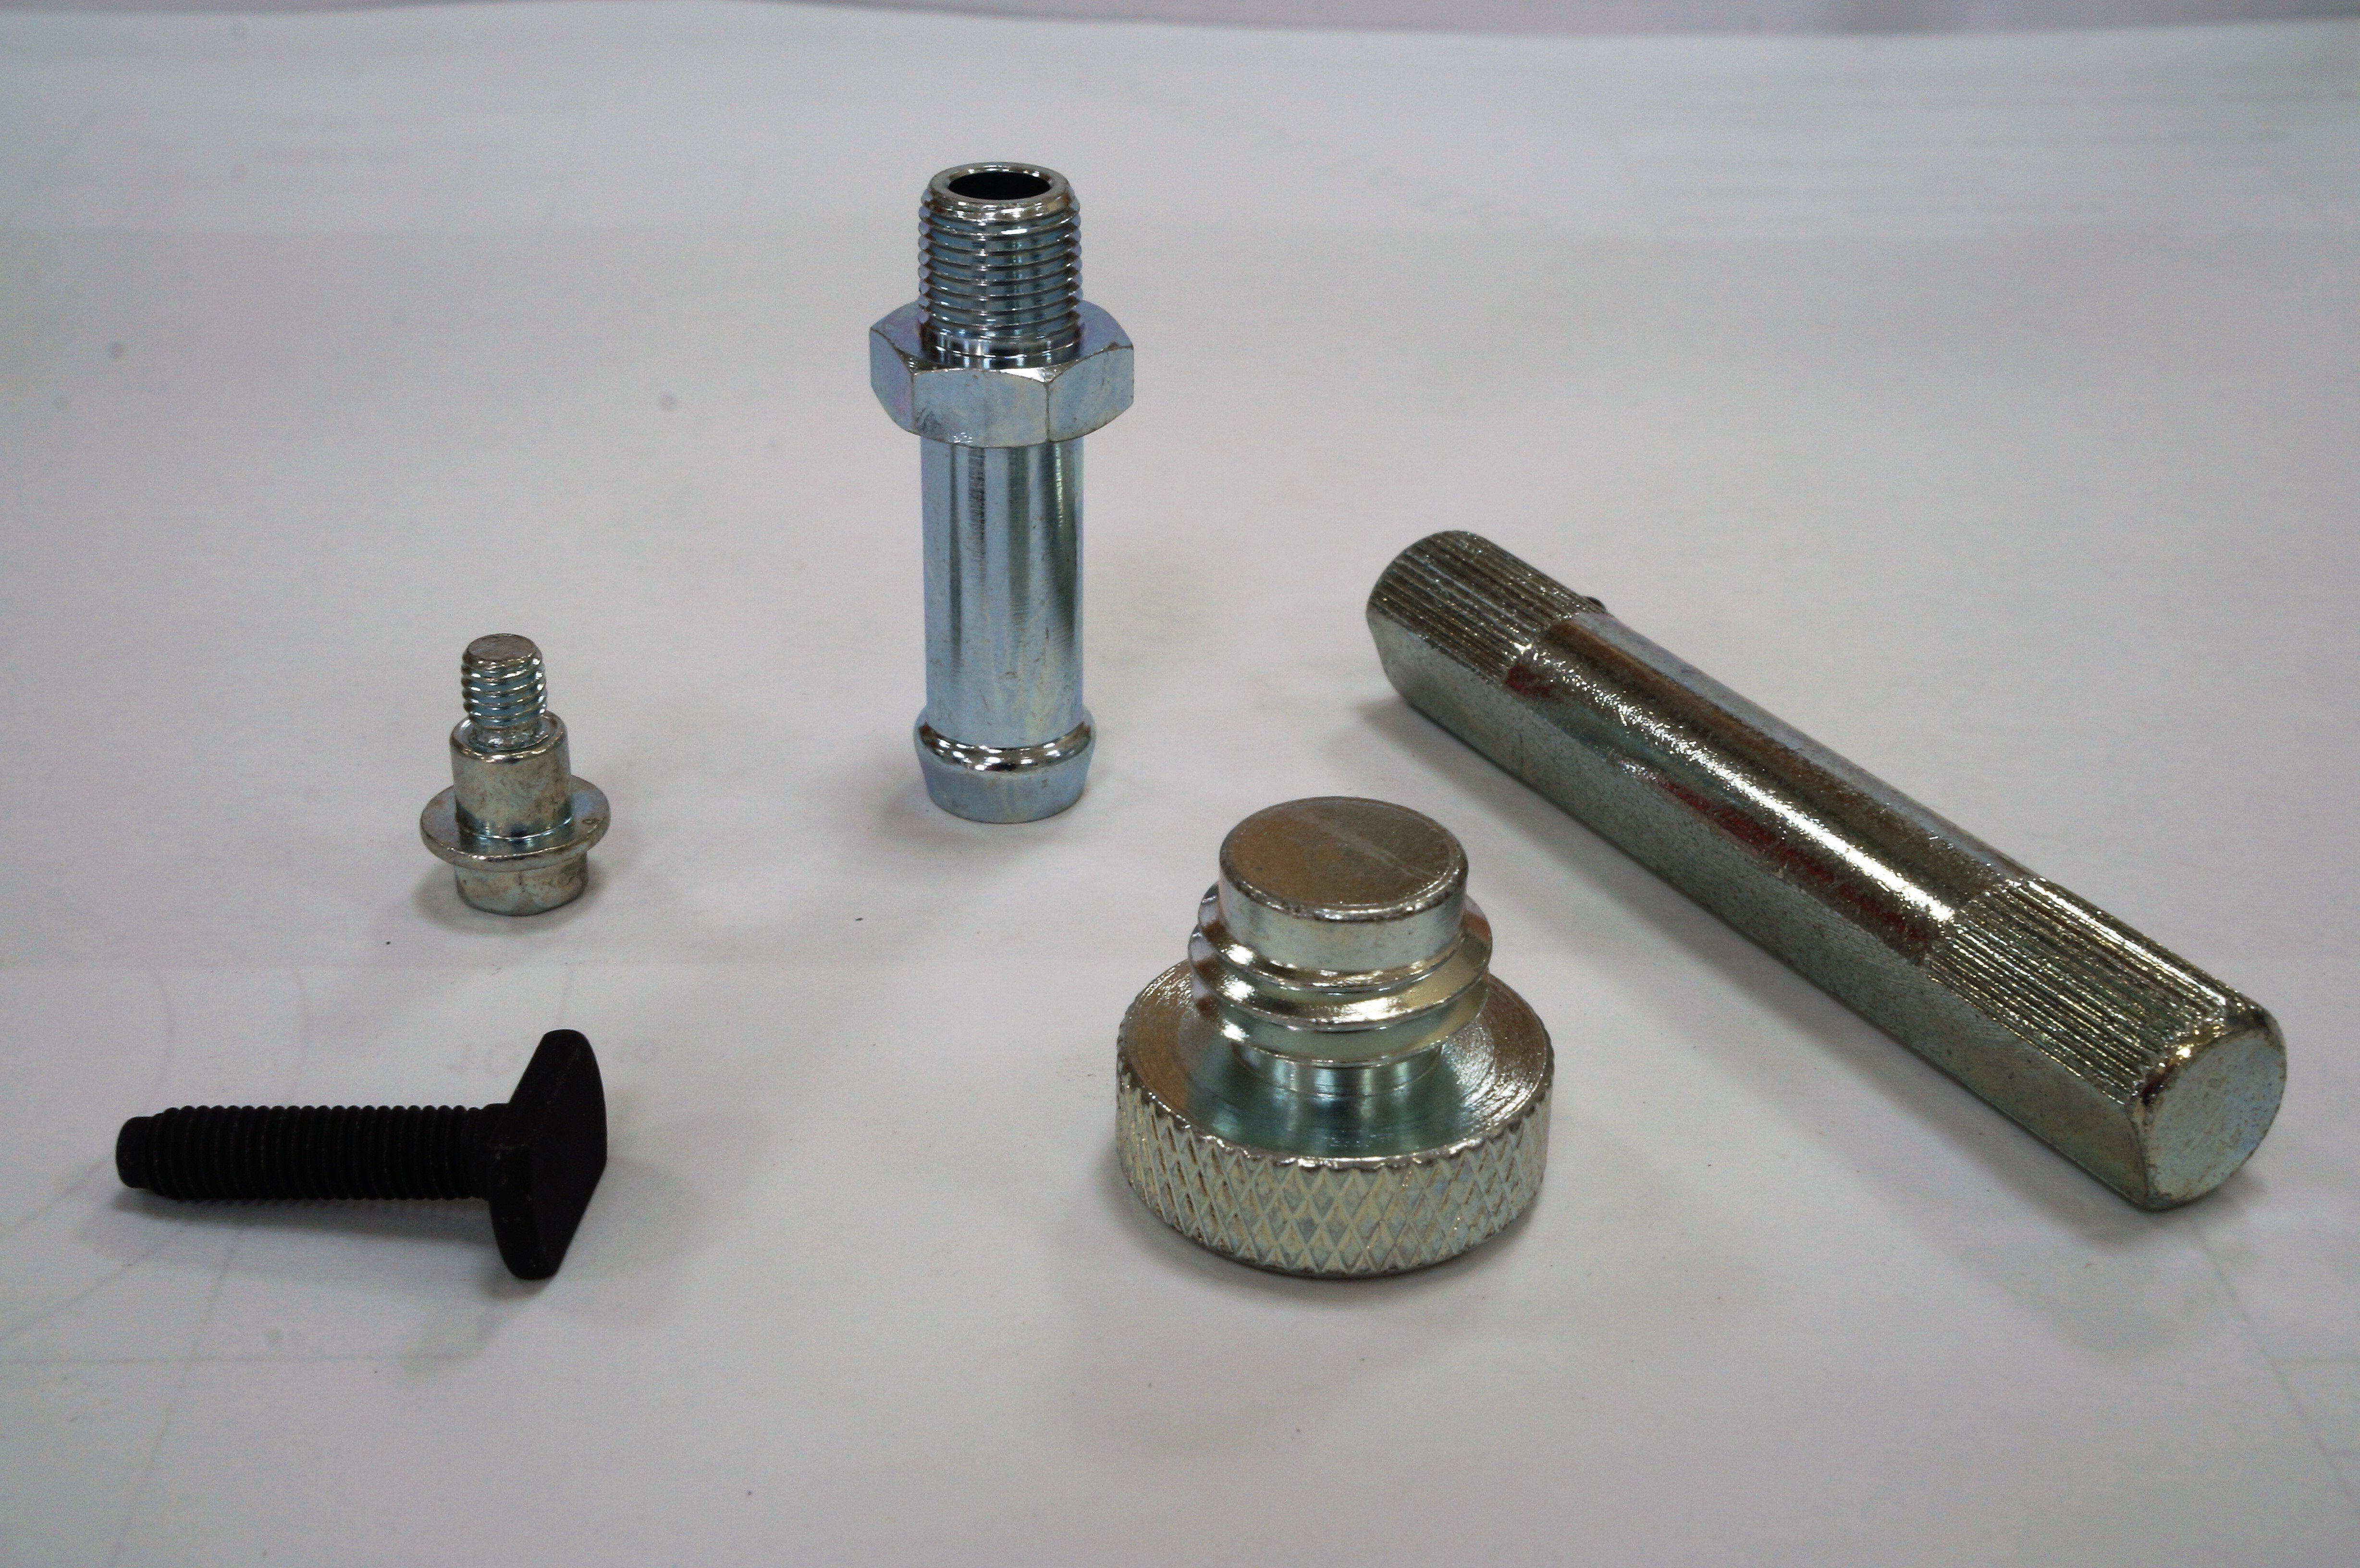 Truck / Trailer / Heavy Duty Bolts for Vehicle Fastener made by Sunny Screw Industry 三能螺栓工業股份有限公司 - MatchSupplier.com